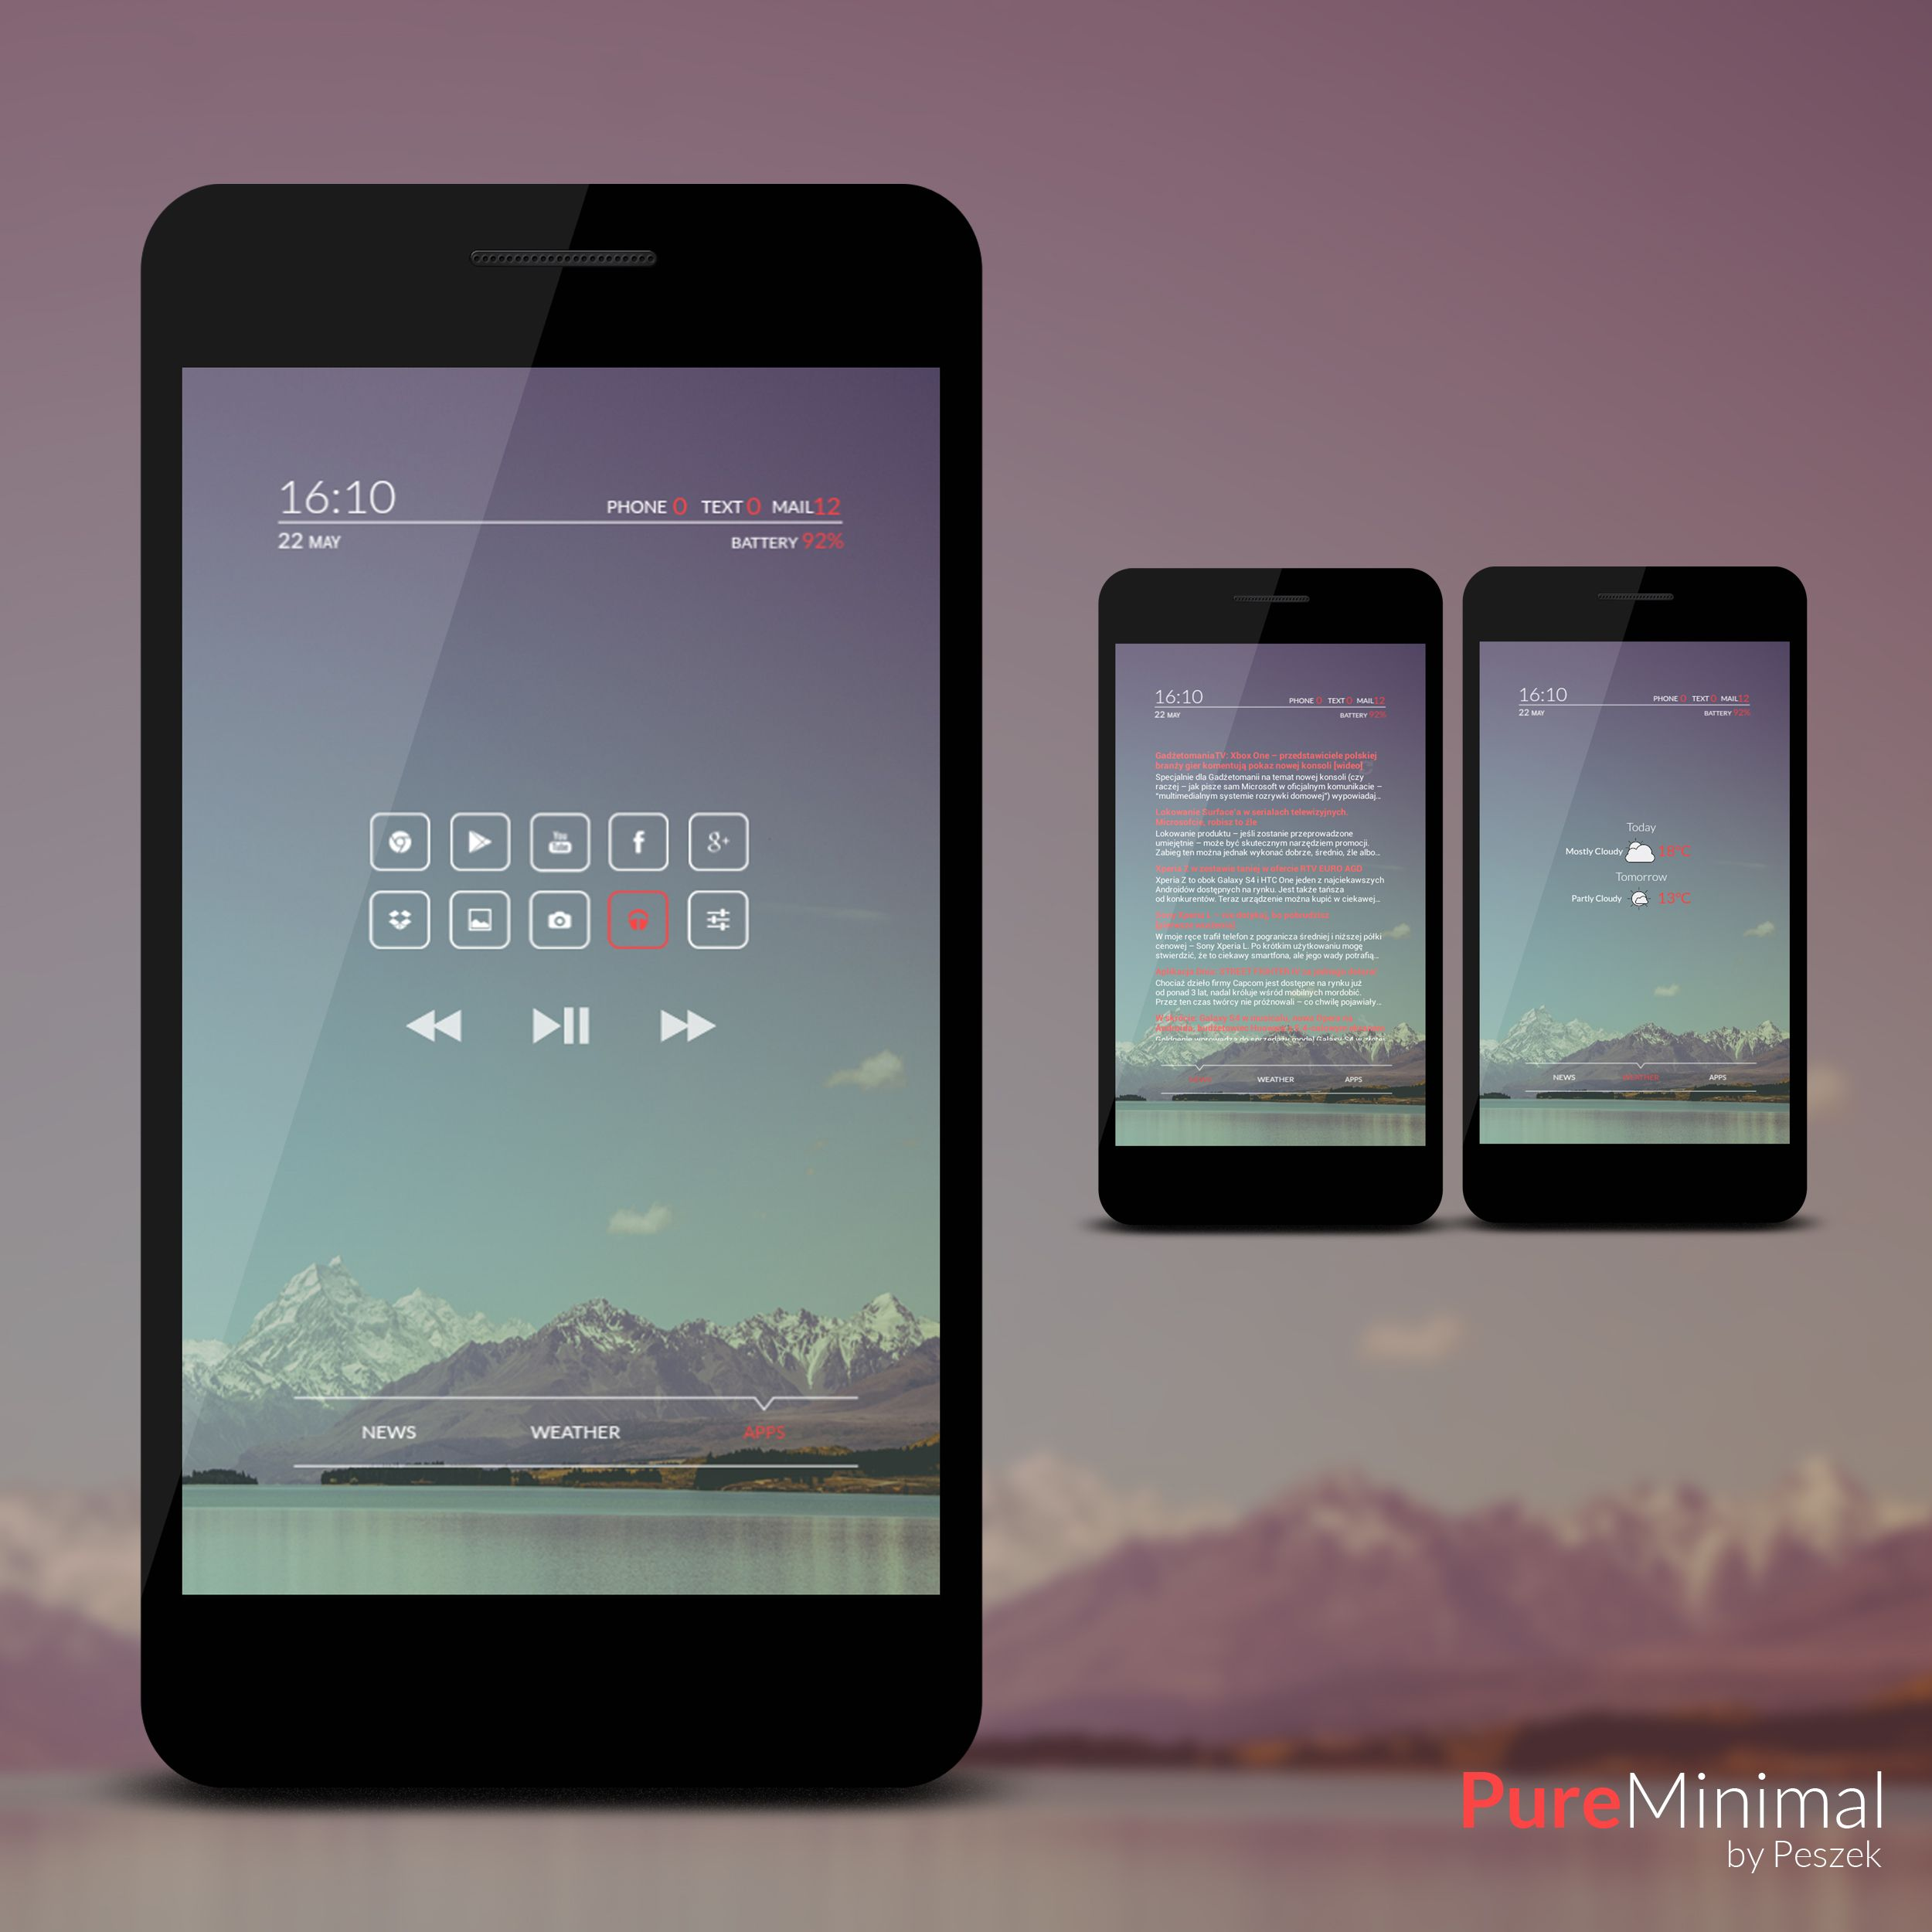 Pure Minimal Android Homescreen By Peszek   MyColorscreen